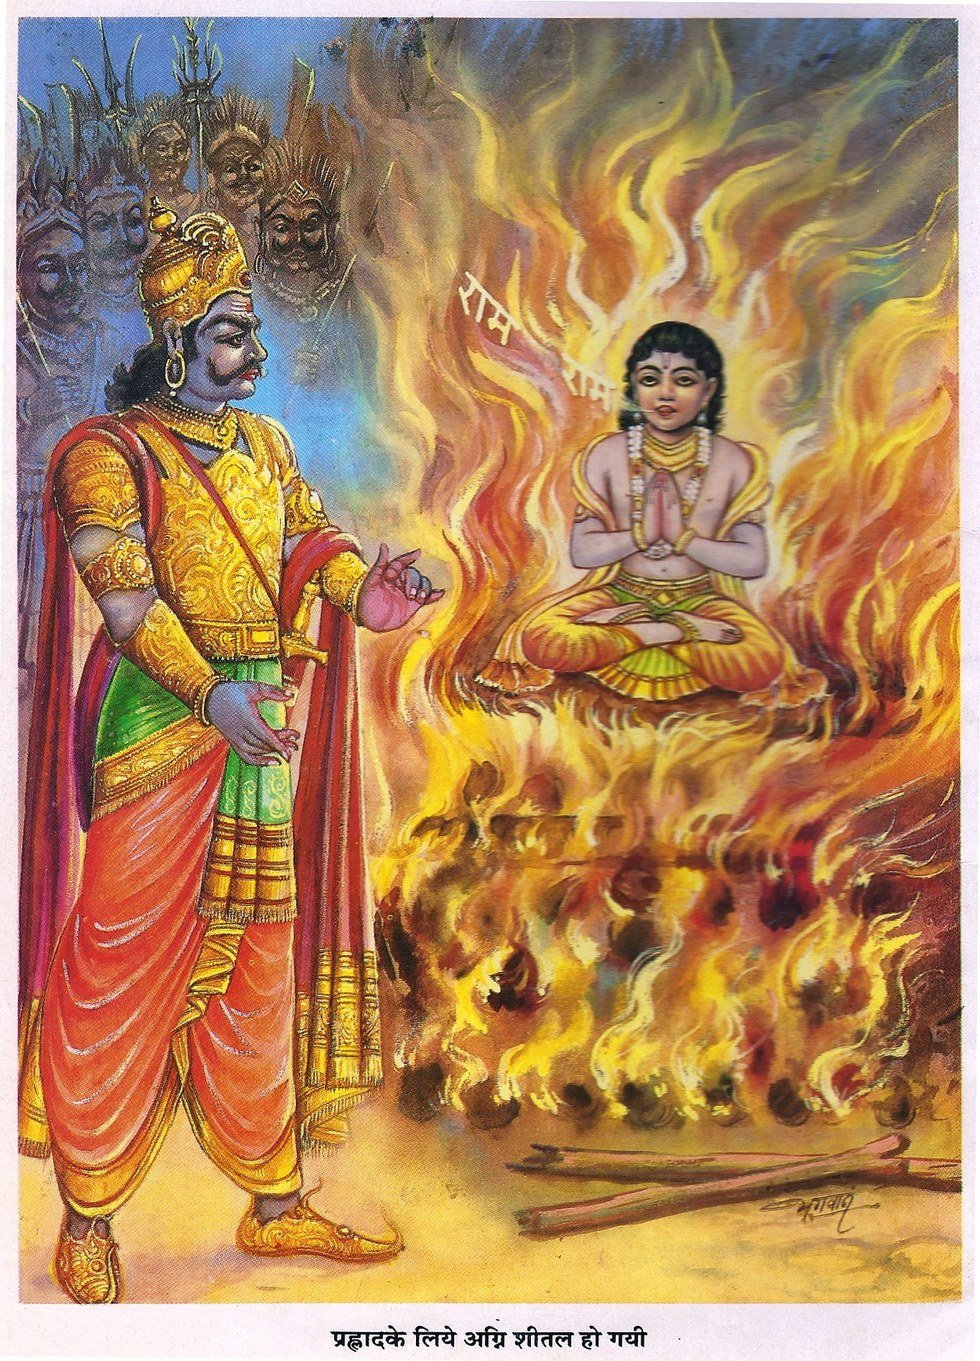 Dolyatra, Dolyatra Festival, Dolyatra Festival in West Prahlad and holika pictures